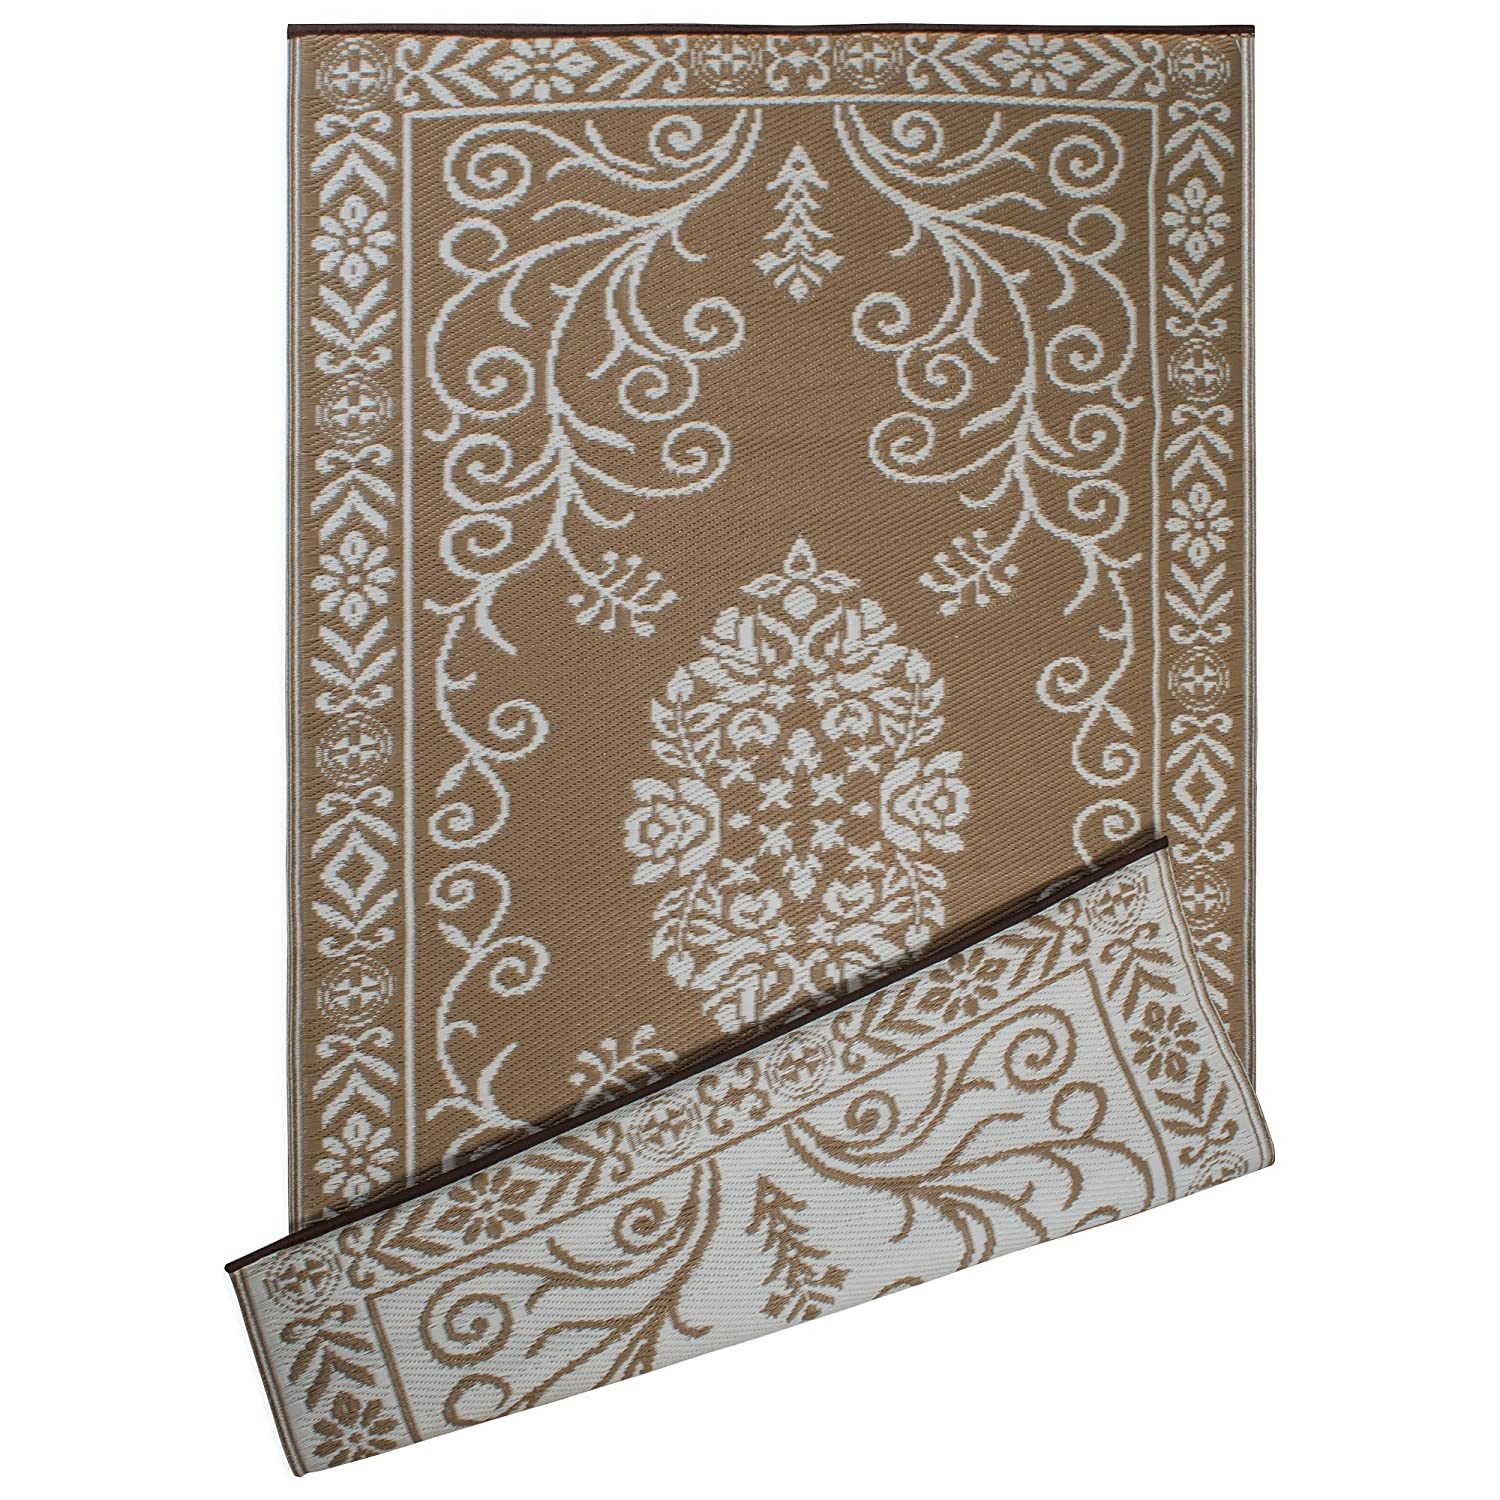 Outdoor Rugs Online Shopping For Clothing Shoes